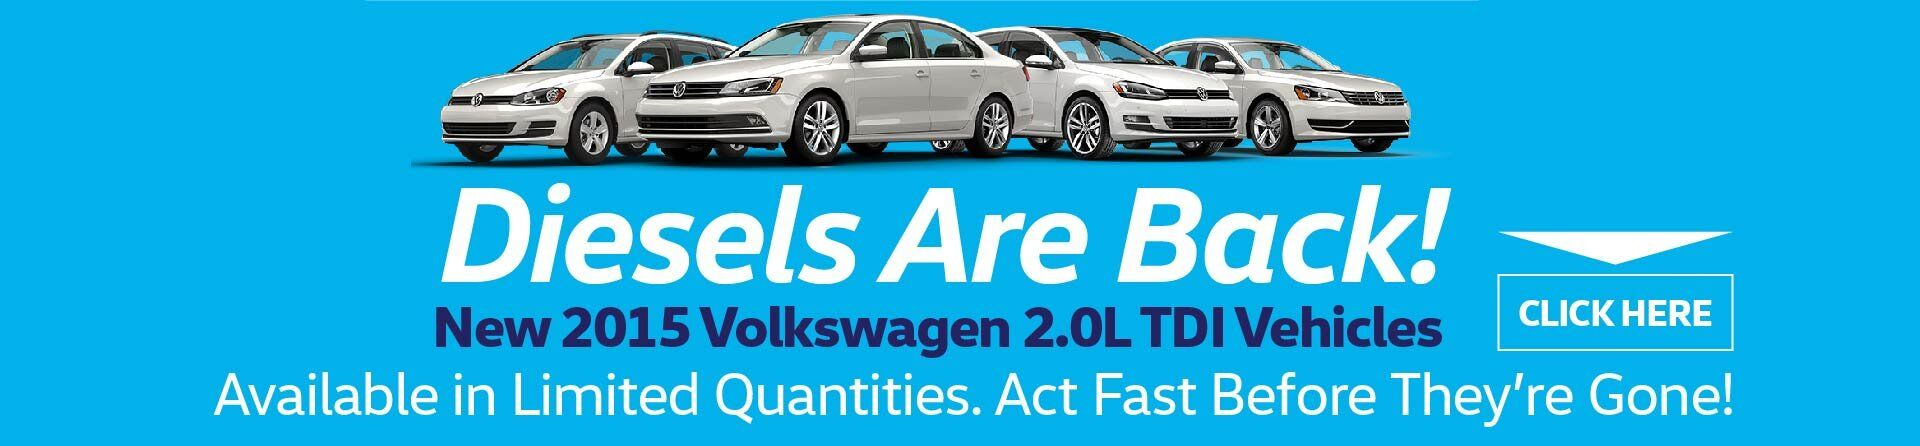 TDI Diesels Are Back